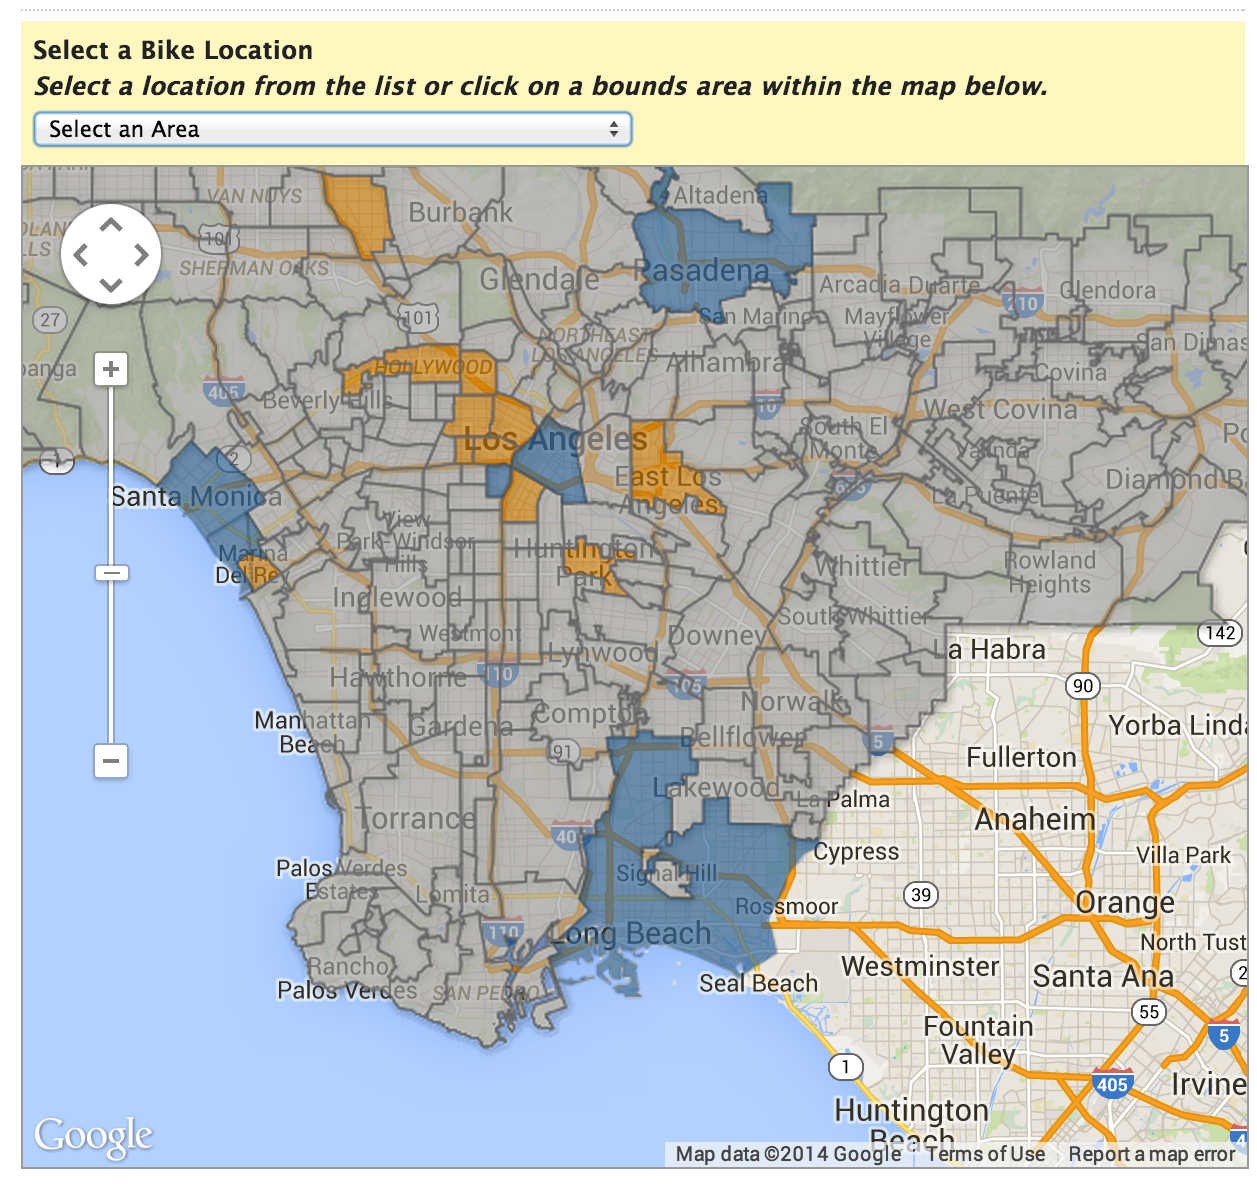 New crowdsourcing map: help build bike share in Los Angeles ... on ventura county map, south bend county map, riverside county, downtown los angeles, santa clarita, ventura county, san francisco county map, santa monica, san diego county map, south carolina map, northwest oregon county map, orange county, pasadena map, burbank county map, san diego county, california map, la county map, kern county map, riverside map, butte county map, long beach, beverly hills, glendale map, sf bay county map, santa cruz county map, southern california, san bernardino county, bernardino county map, indianapolis county map, hollywood map, san francisco bay area, orange county map,